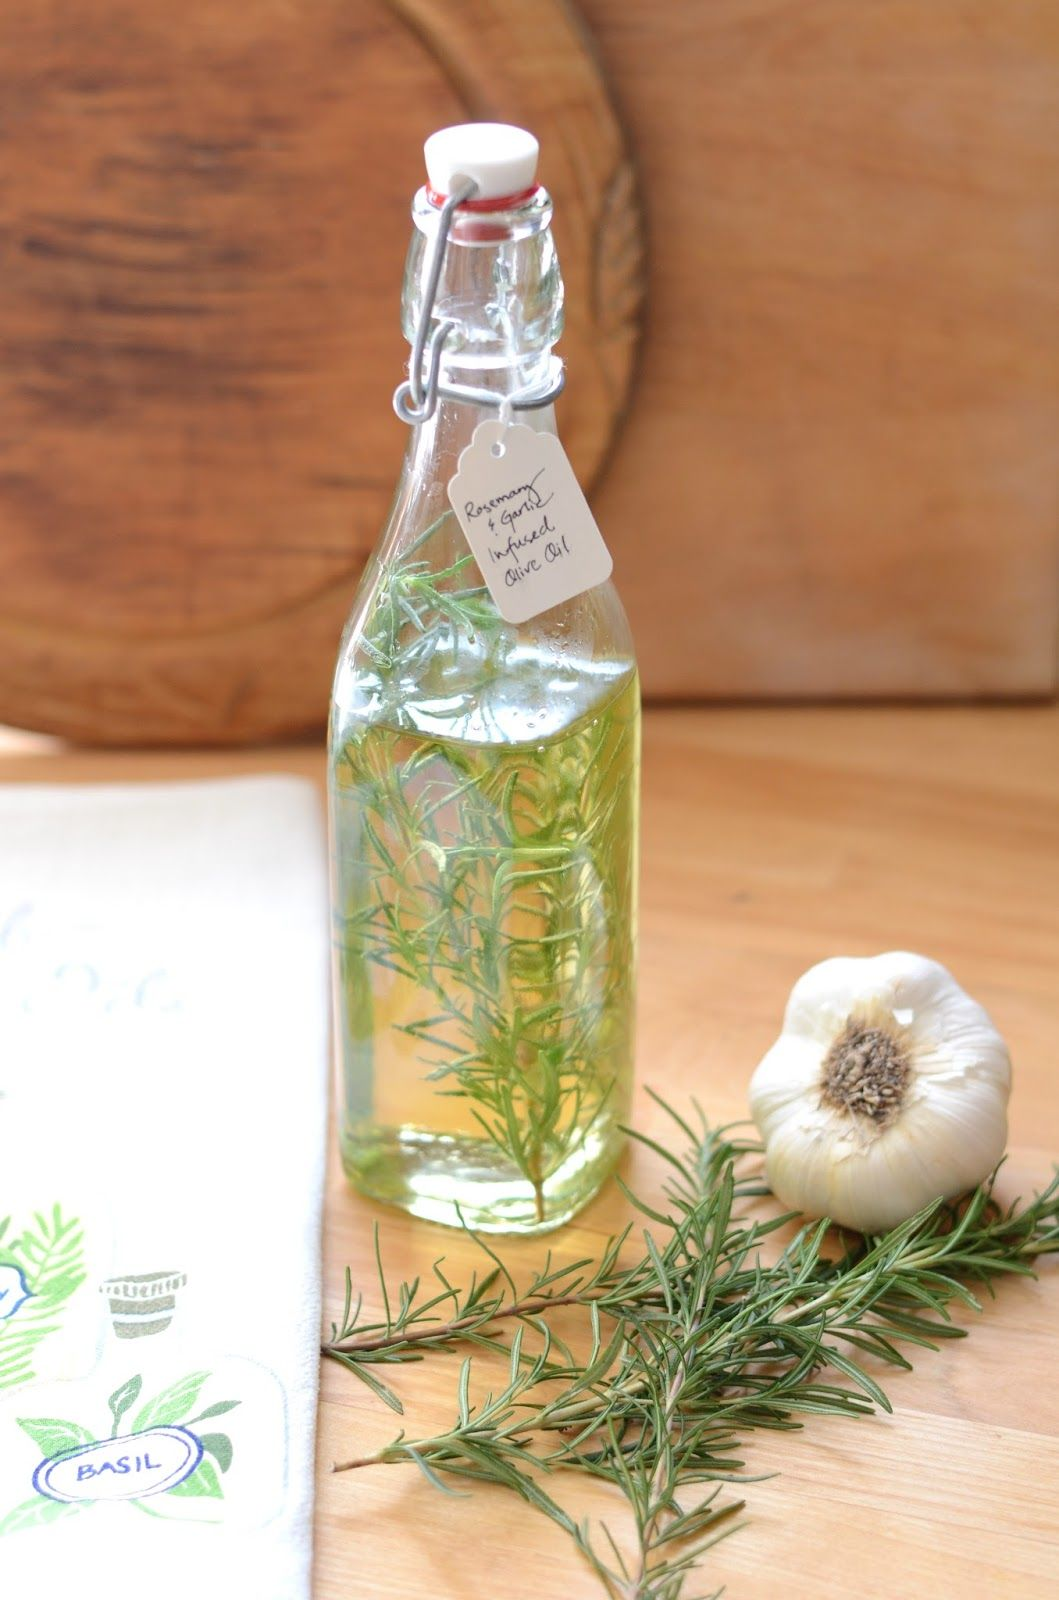 Rosemary & Garlic Infused Olive Oil #oliveoils